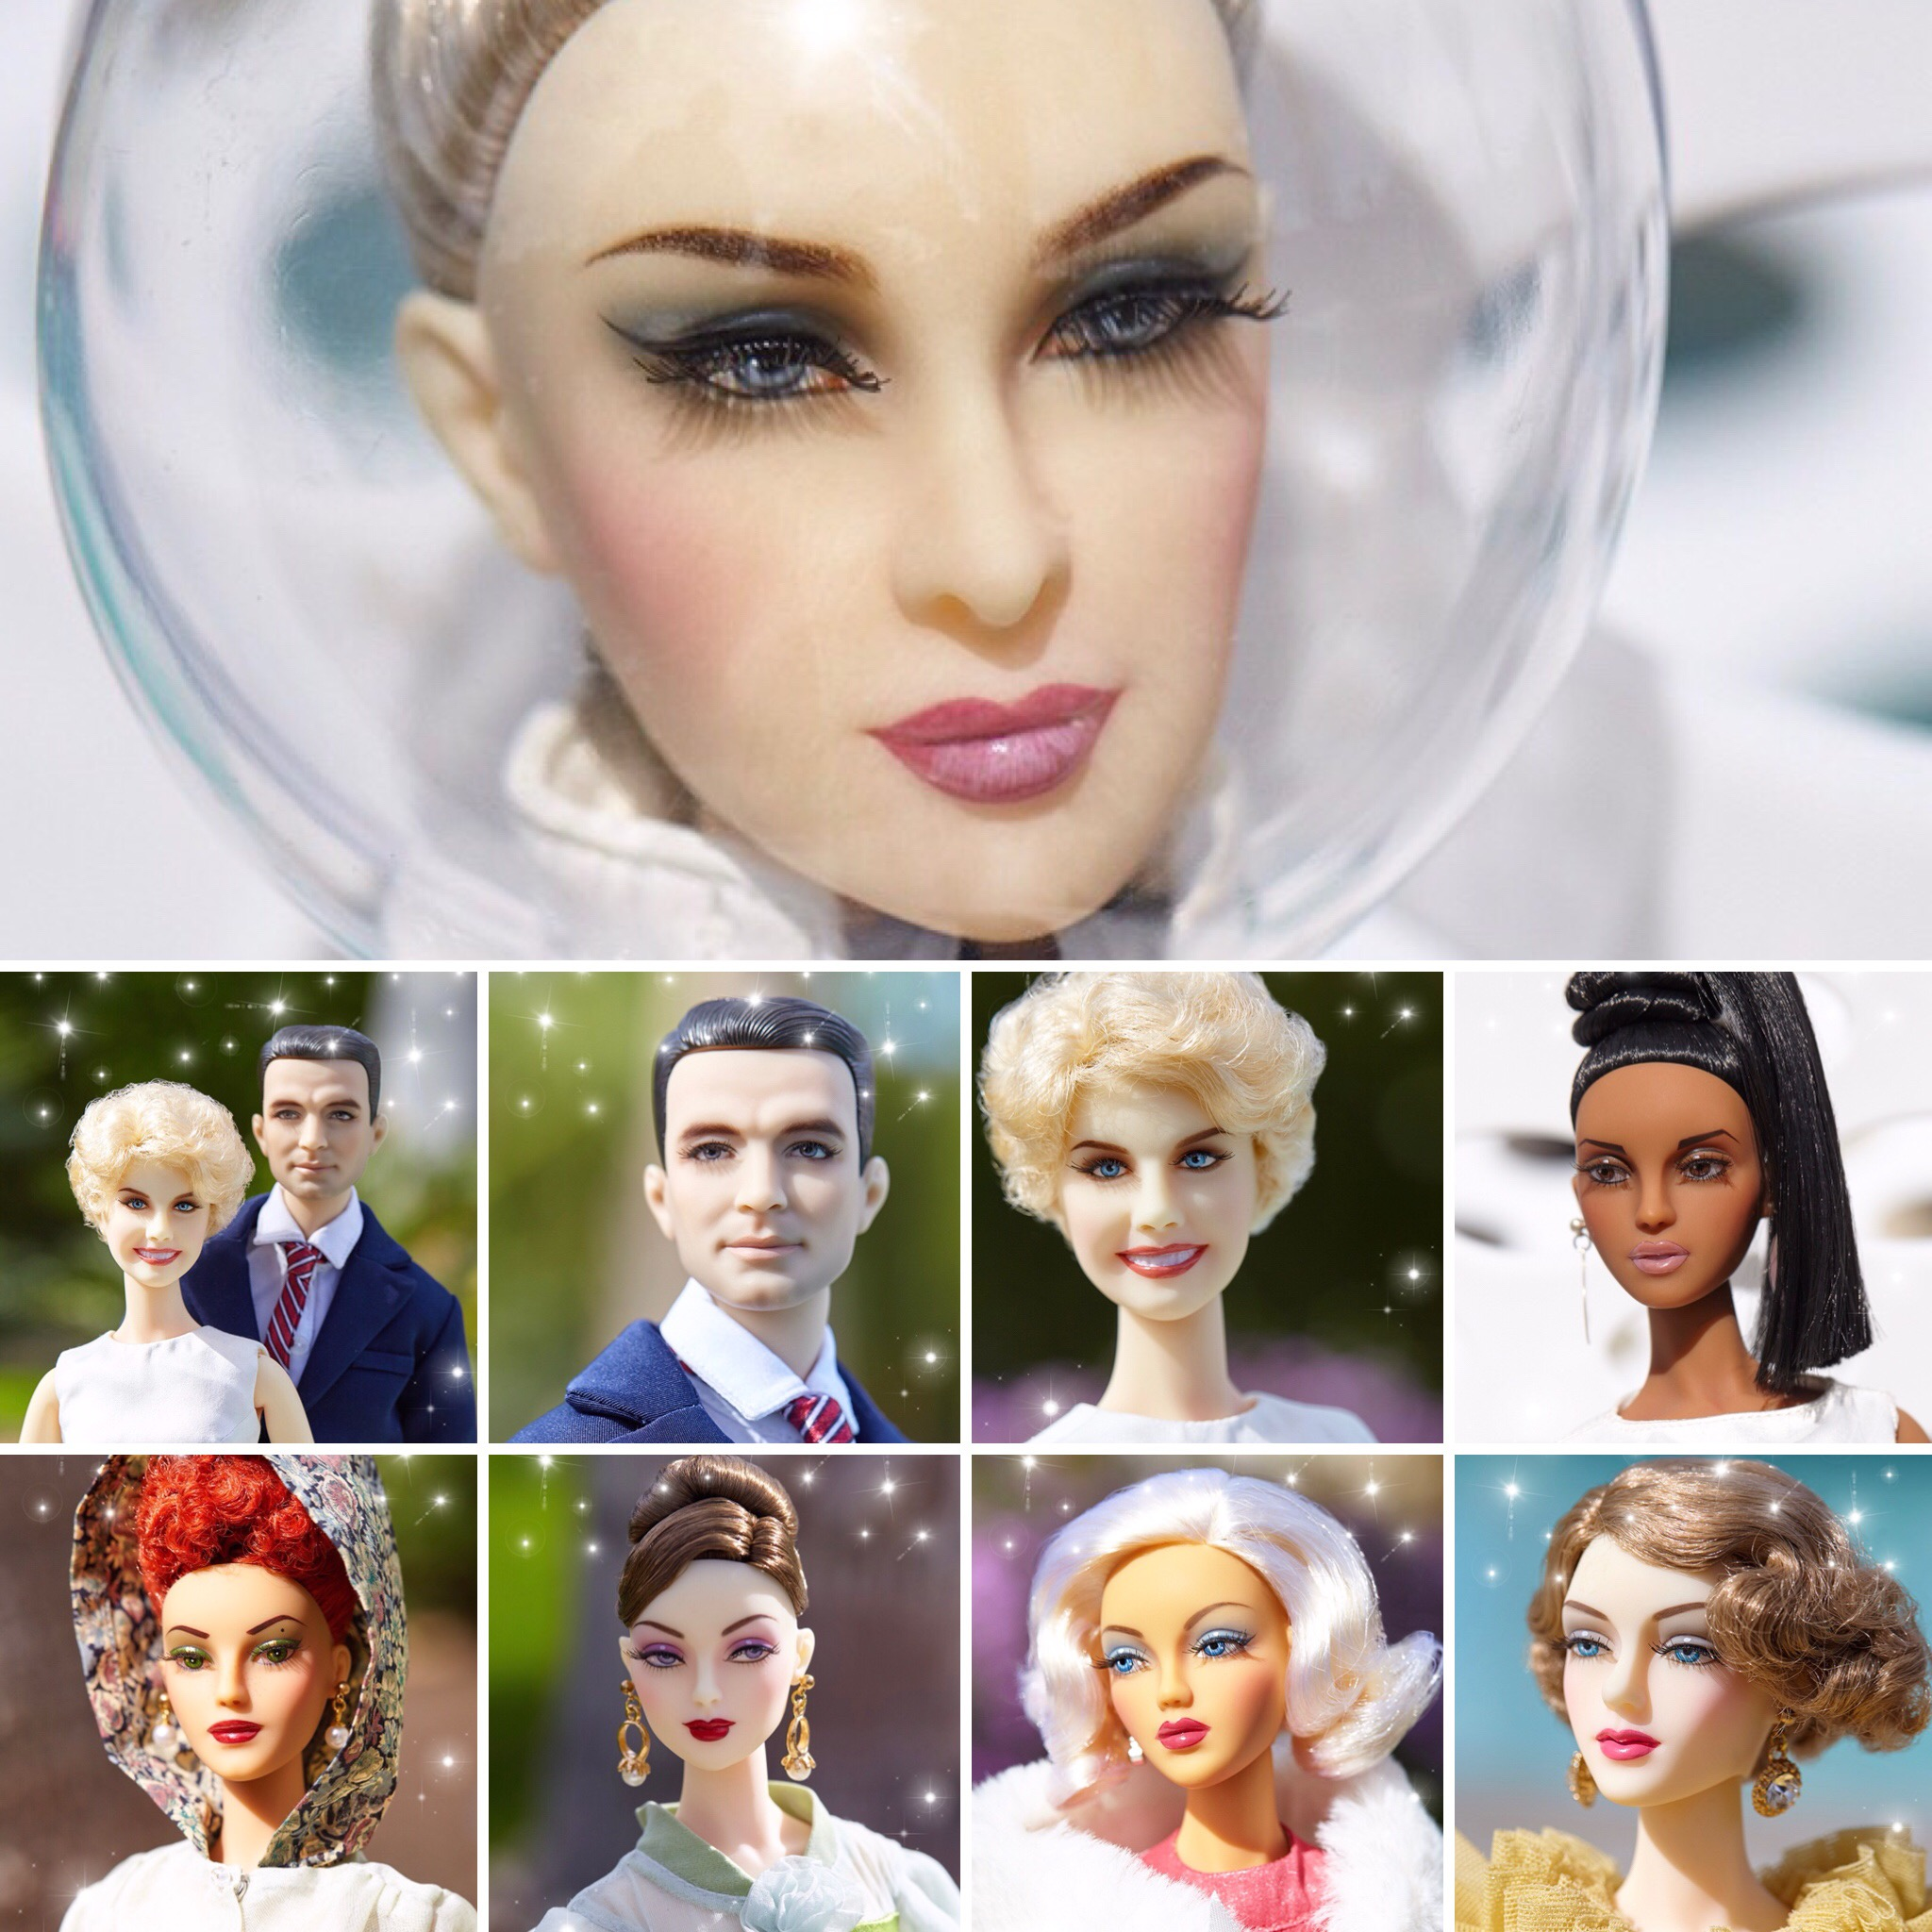 JAMIEshow Palm Springs Convention 2018 Dolls and Accessories